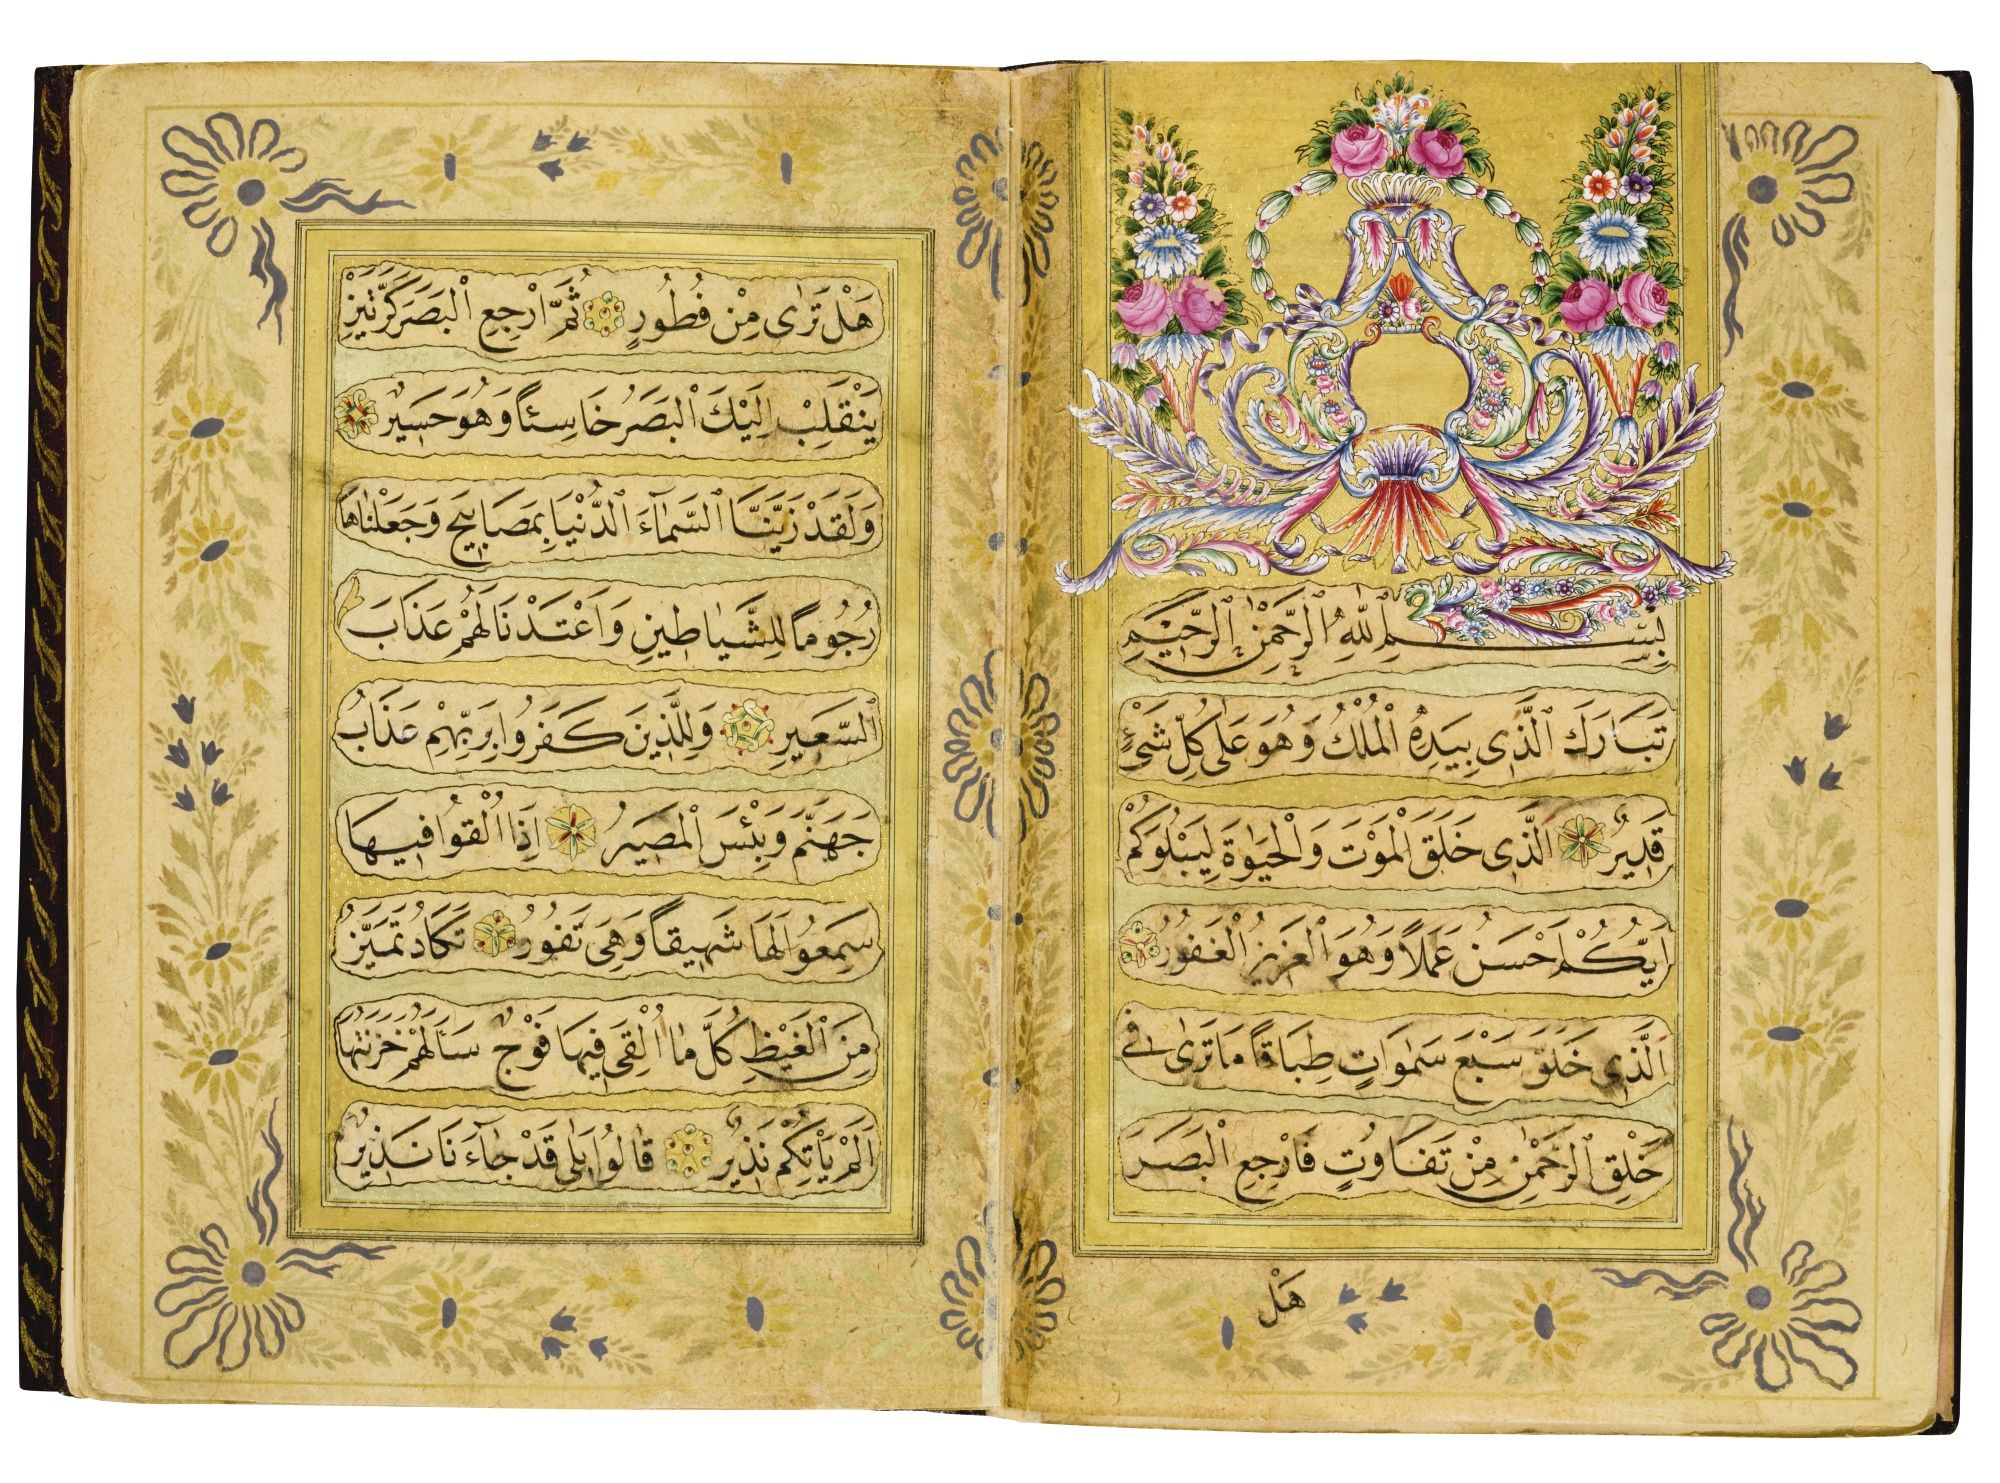 Surat 67 Mulk The Kingdom Short Lyrical Sura Chapter Of Only 30 Short Ayat This One Can Be Compared To The Prophet Dav Islamic Art Art Vintage World Maps